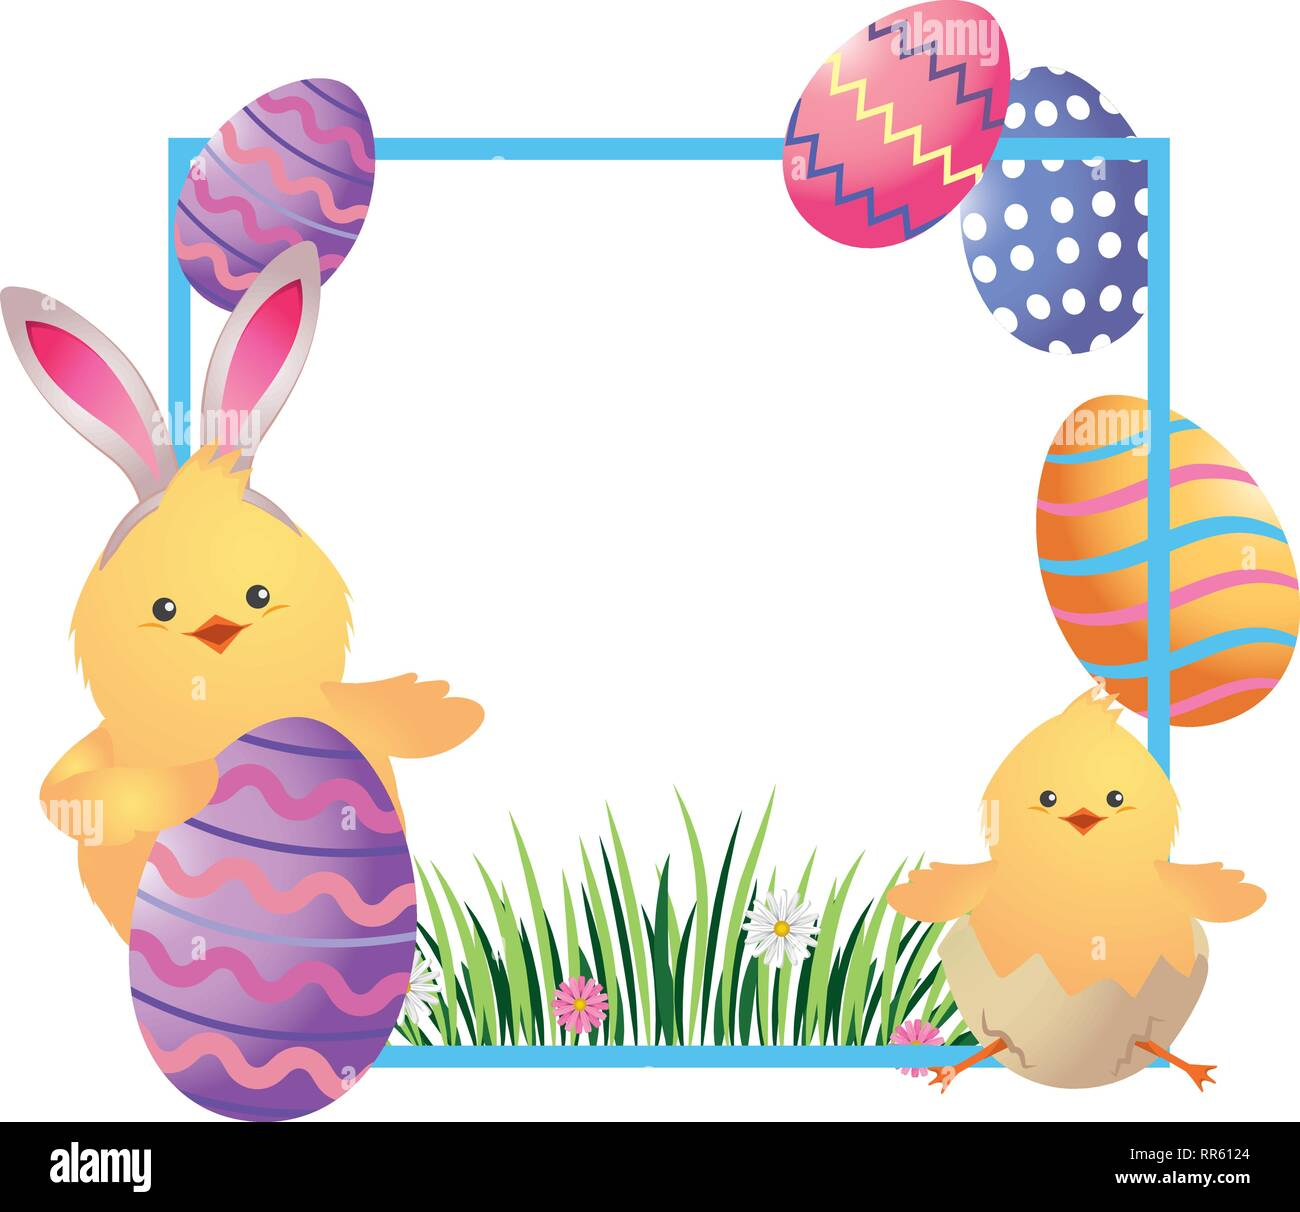 easter chickens cartoon - Stock Image